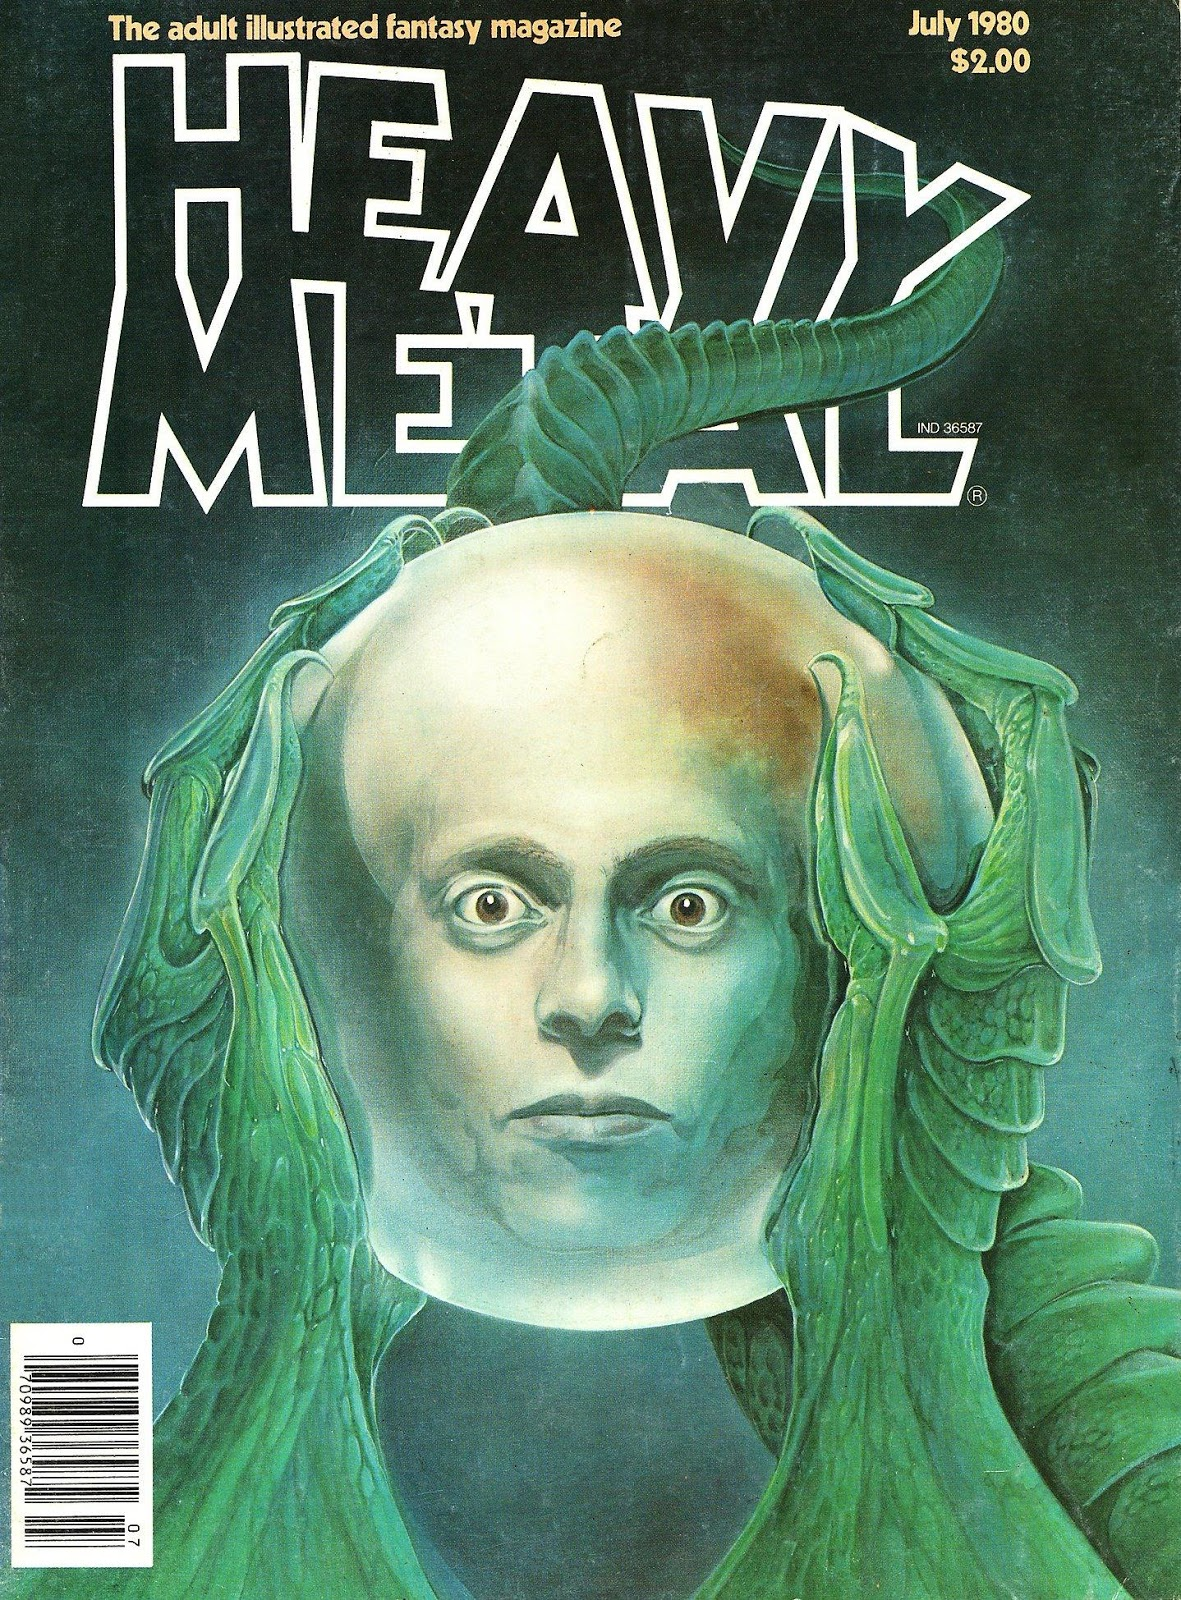 Images: A Fantastic Collection Of Stunning Sci-Fi And Fantasy Based Heavy Metal Comic Book Covers From The Early 1980's